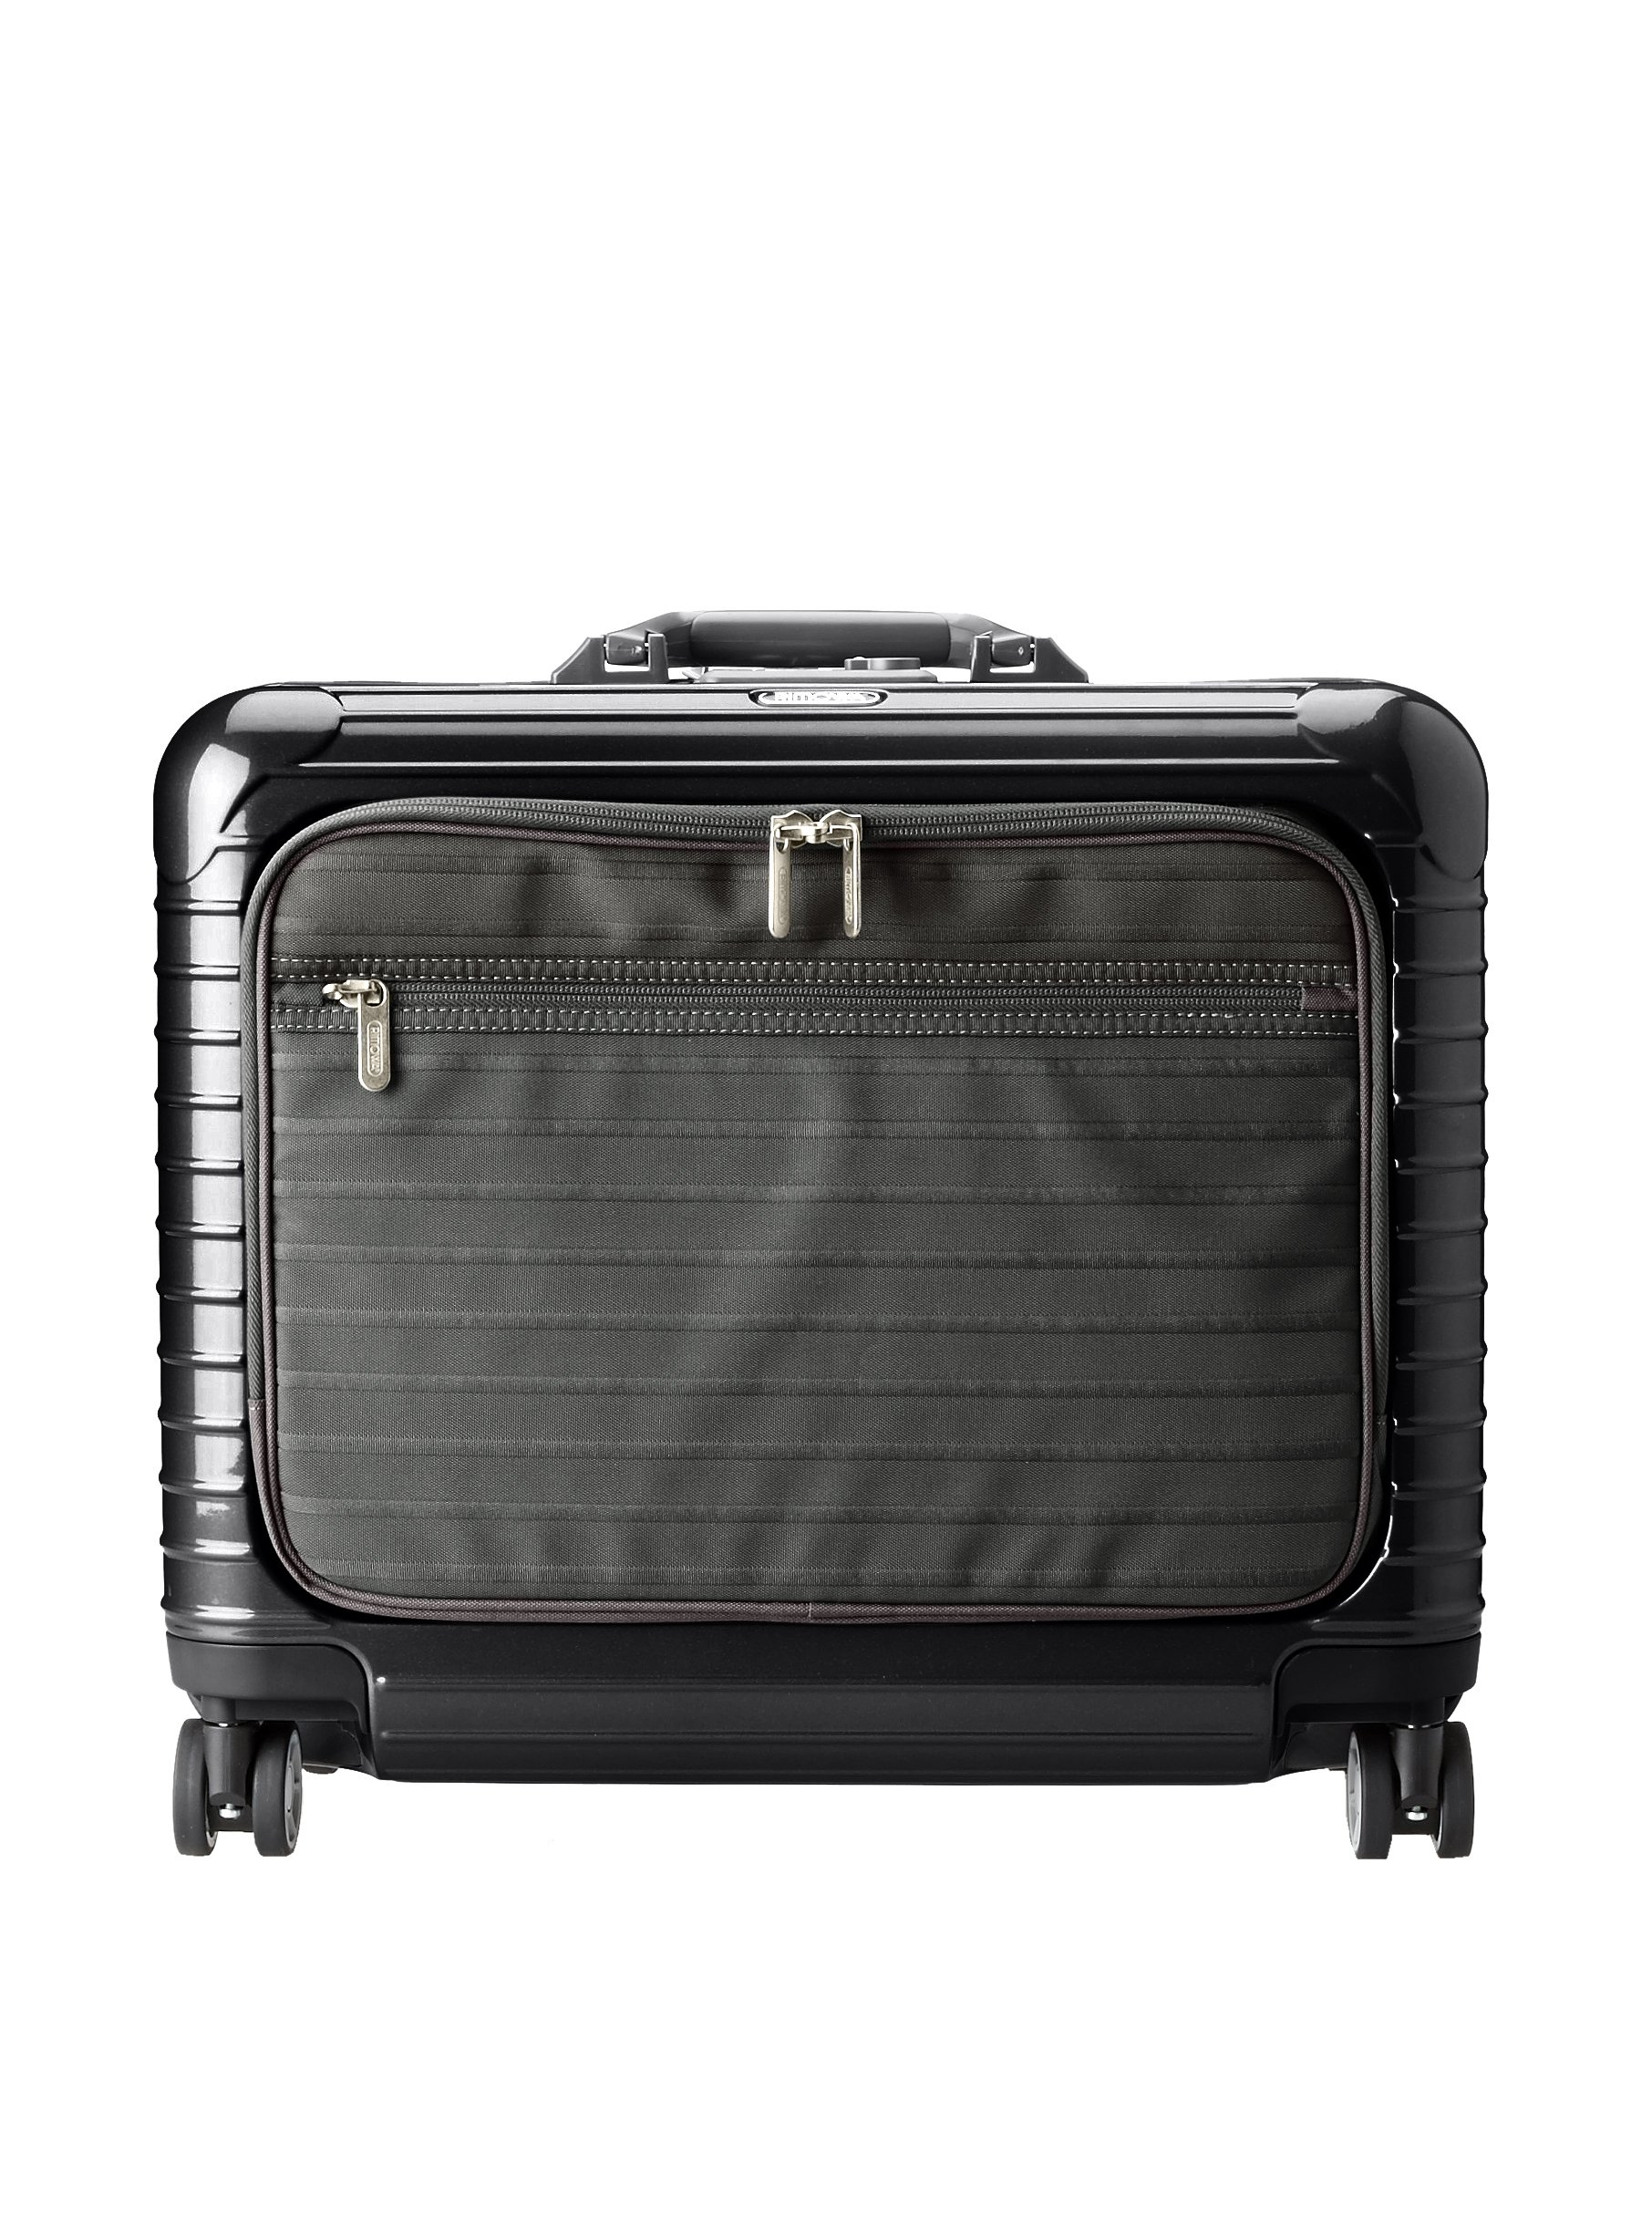 Rimowa Salsa Deluxe Hybrid Business Multiwheel 42L Spinner Luggage, Black